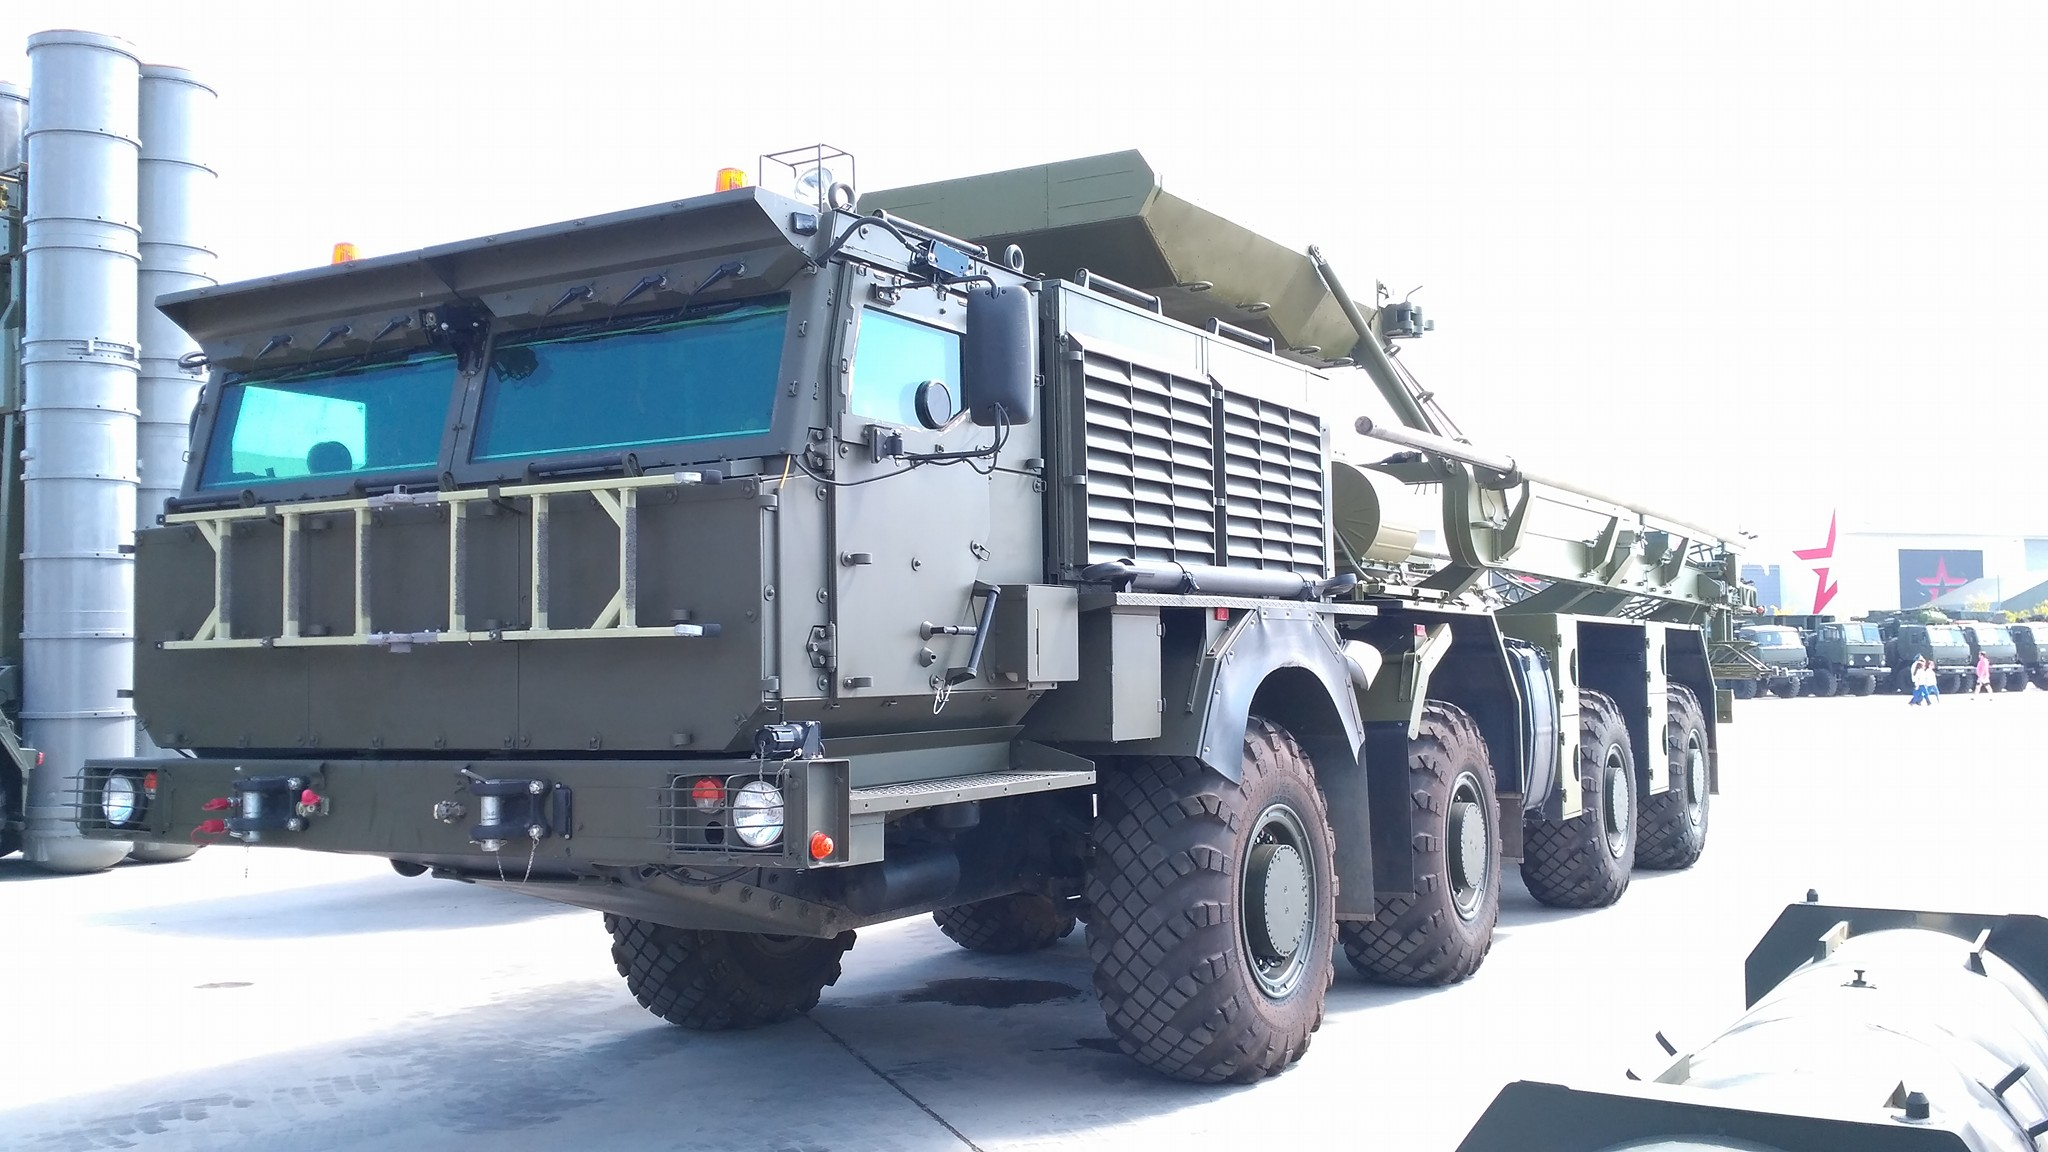 Wheel chassis K-78054 OCD & quot; Platform O, & quot; in the exposition of the forum & quot; Army-2017 & quot;